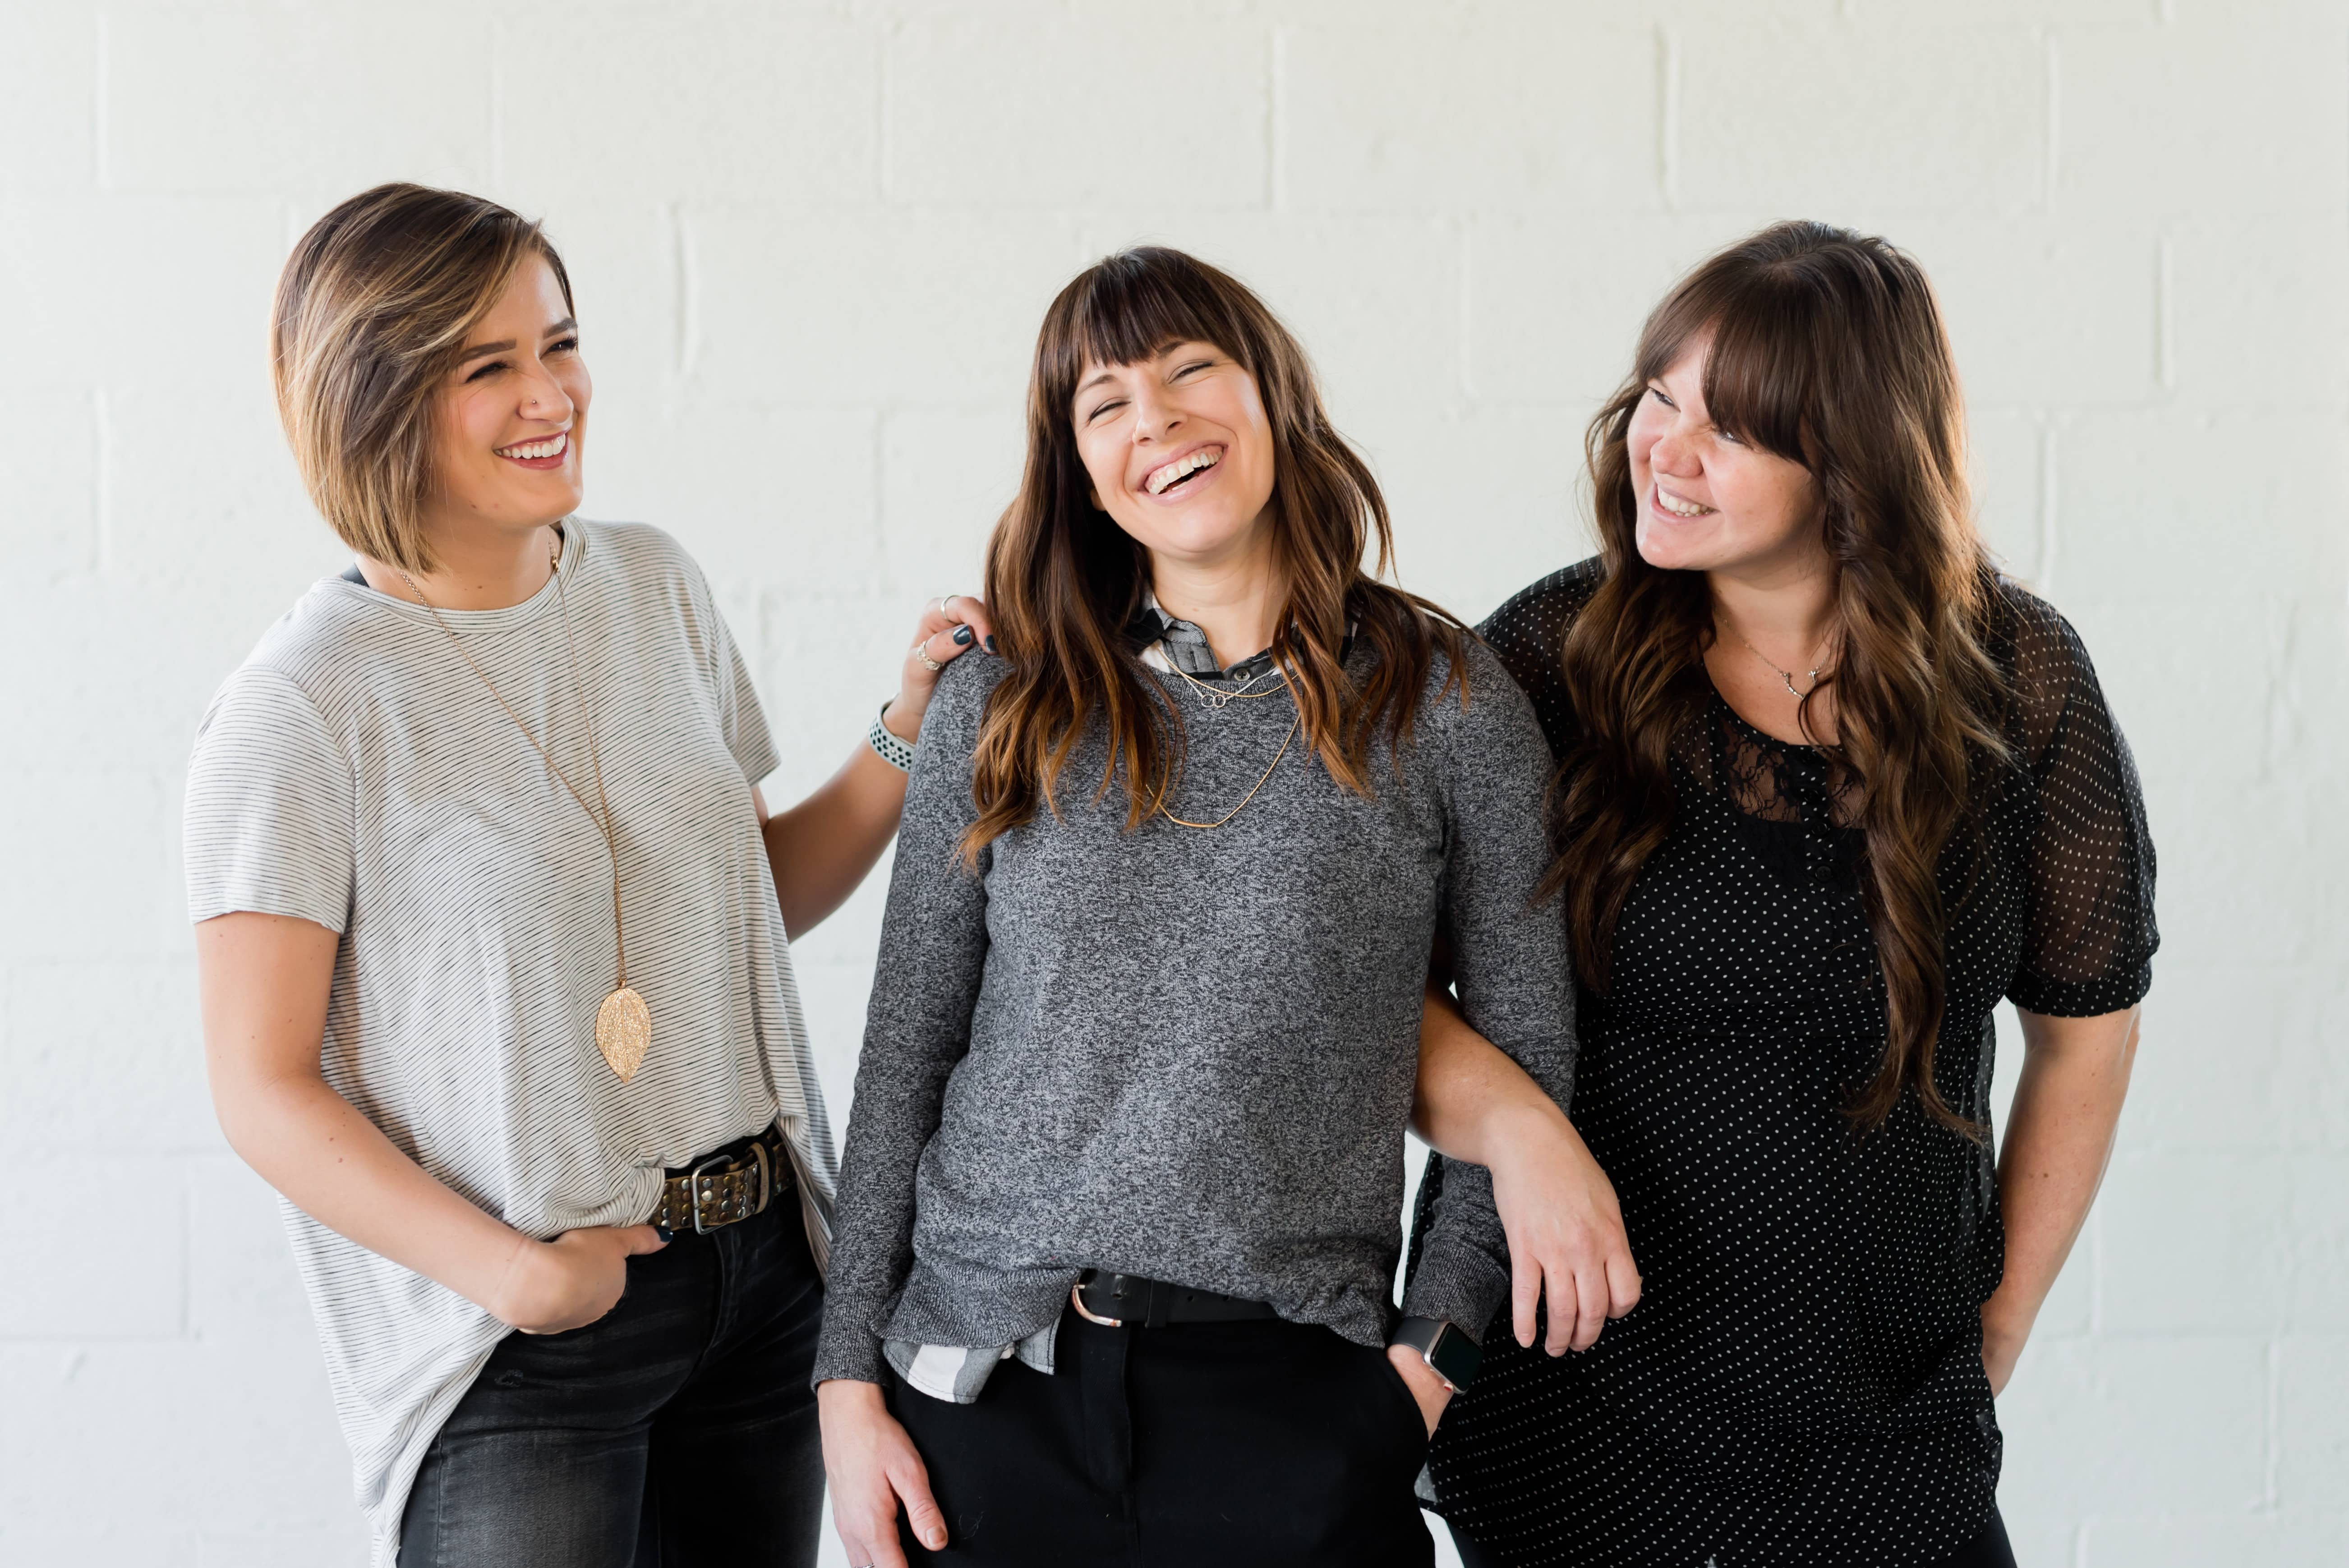 Three women laughing together